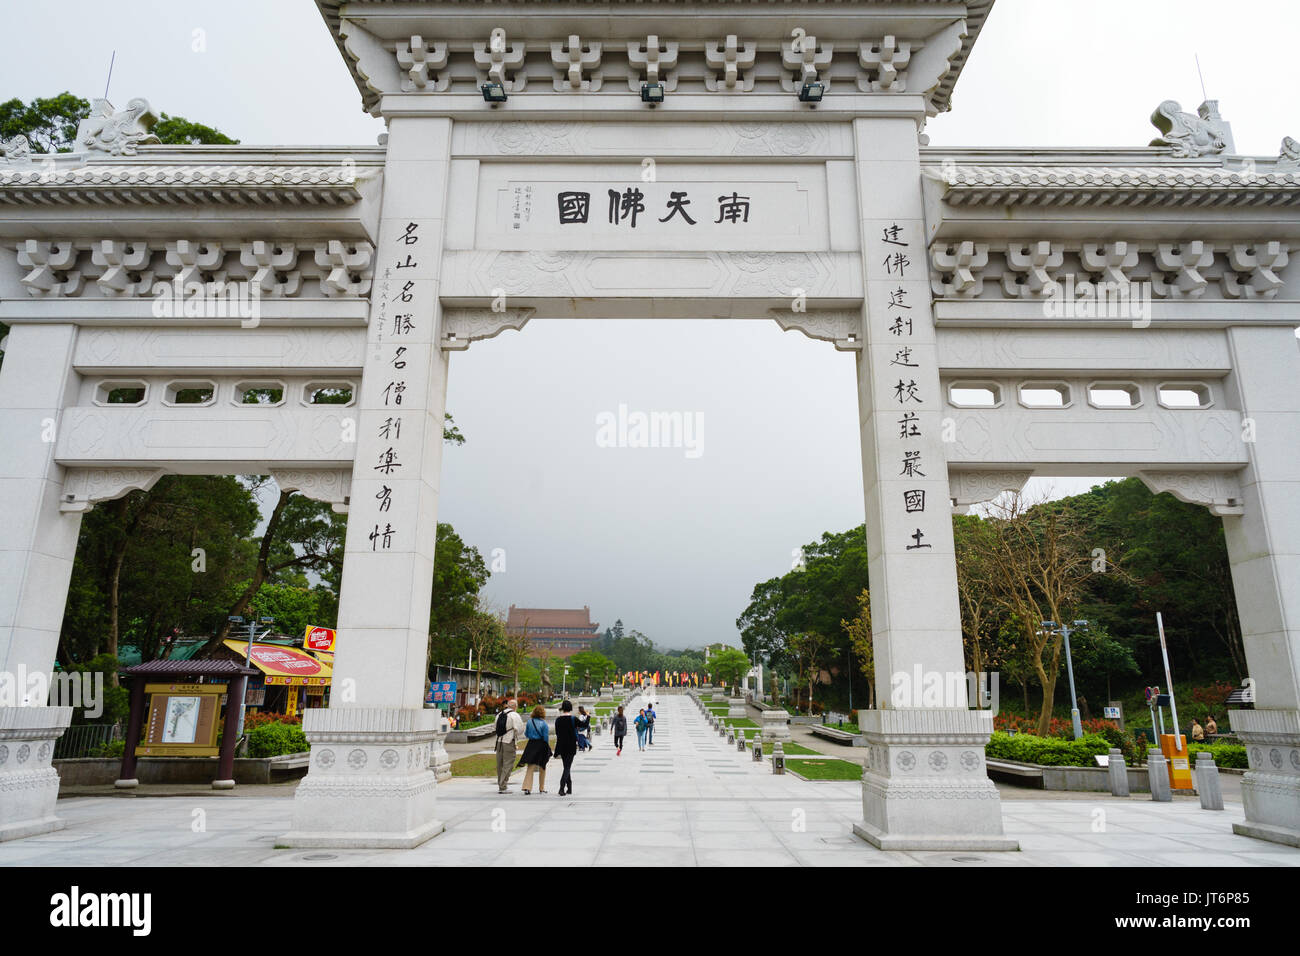 Big arch leading to Po Lin Monastery - Stock Image